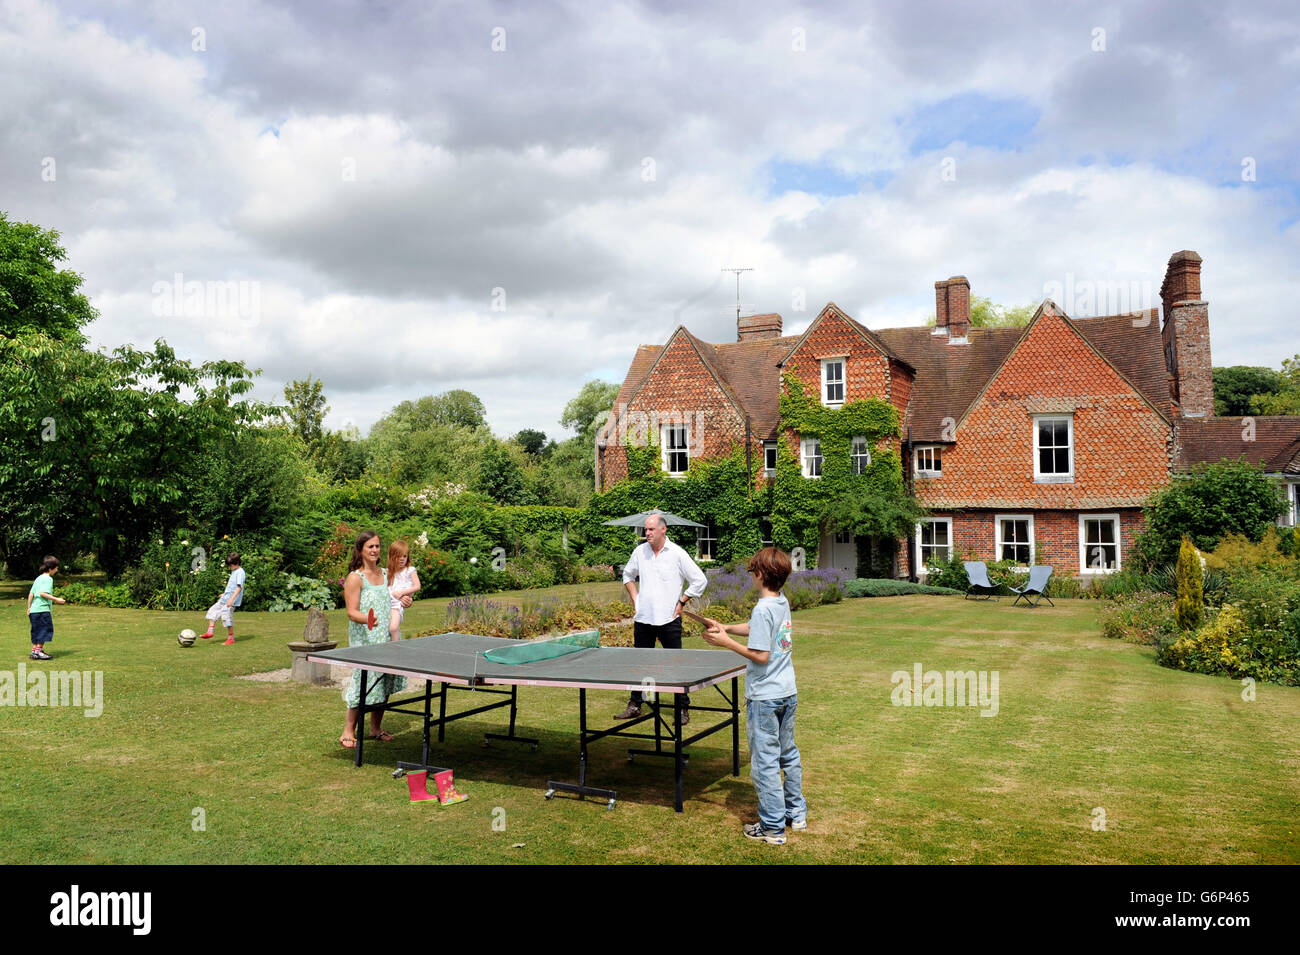 A family playing table tennis in the garden UK - Stock Image